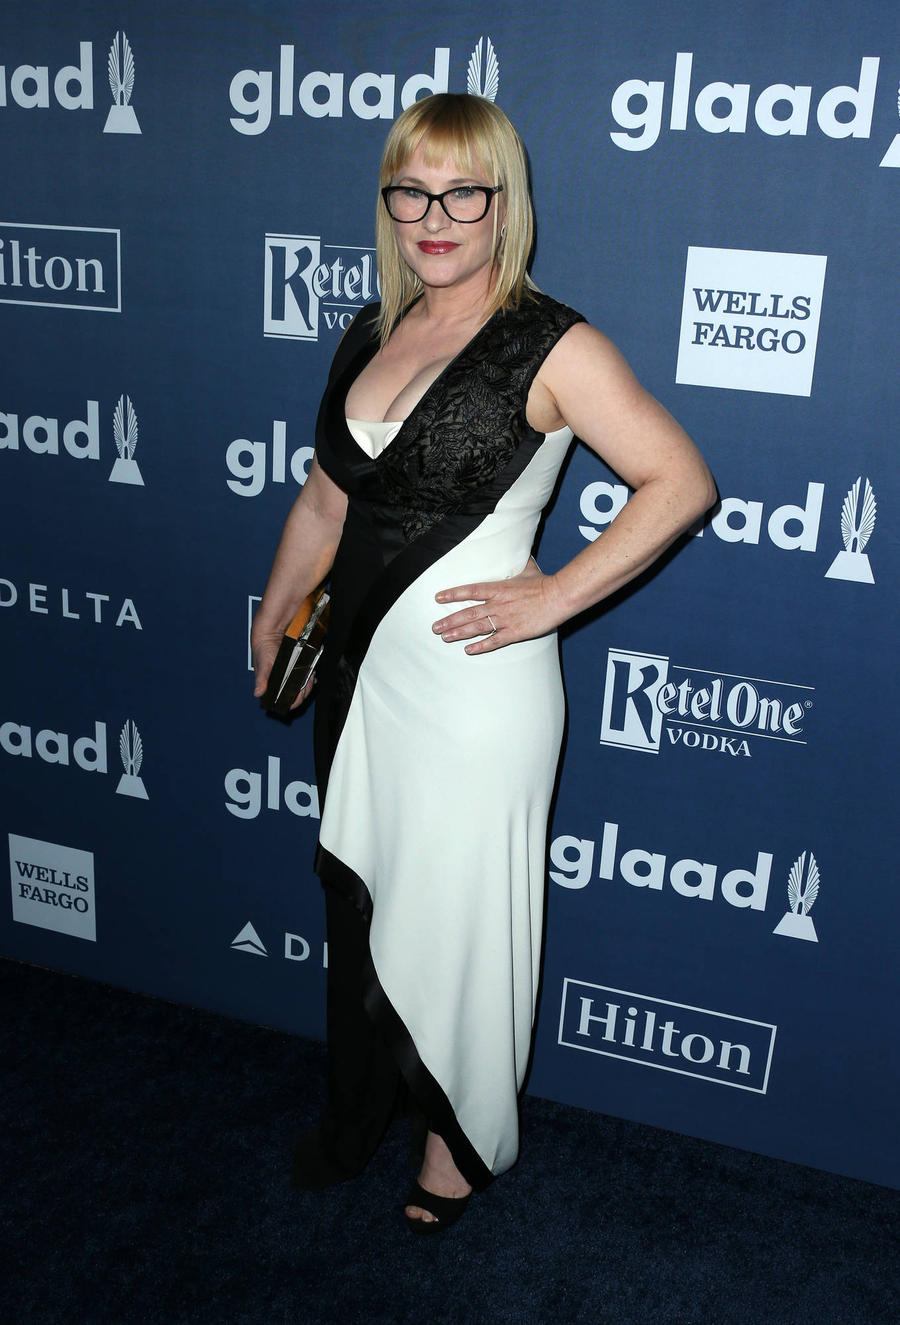 Patricia Arquette Thanks Fans For Support After Sister's Death